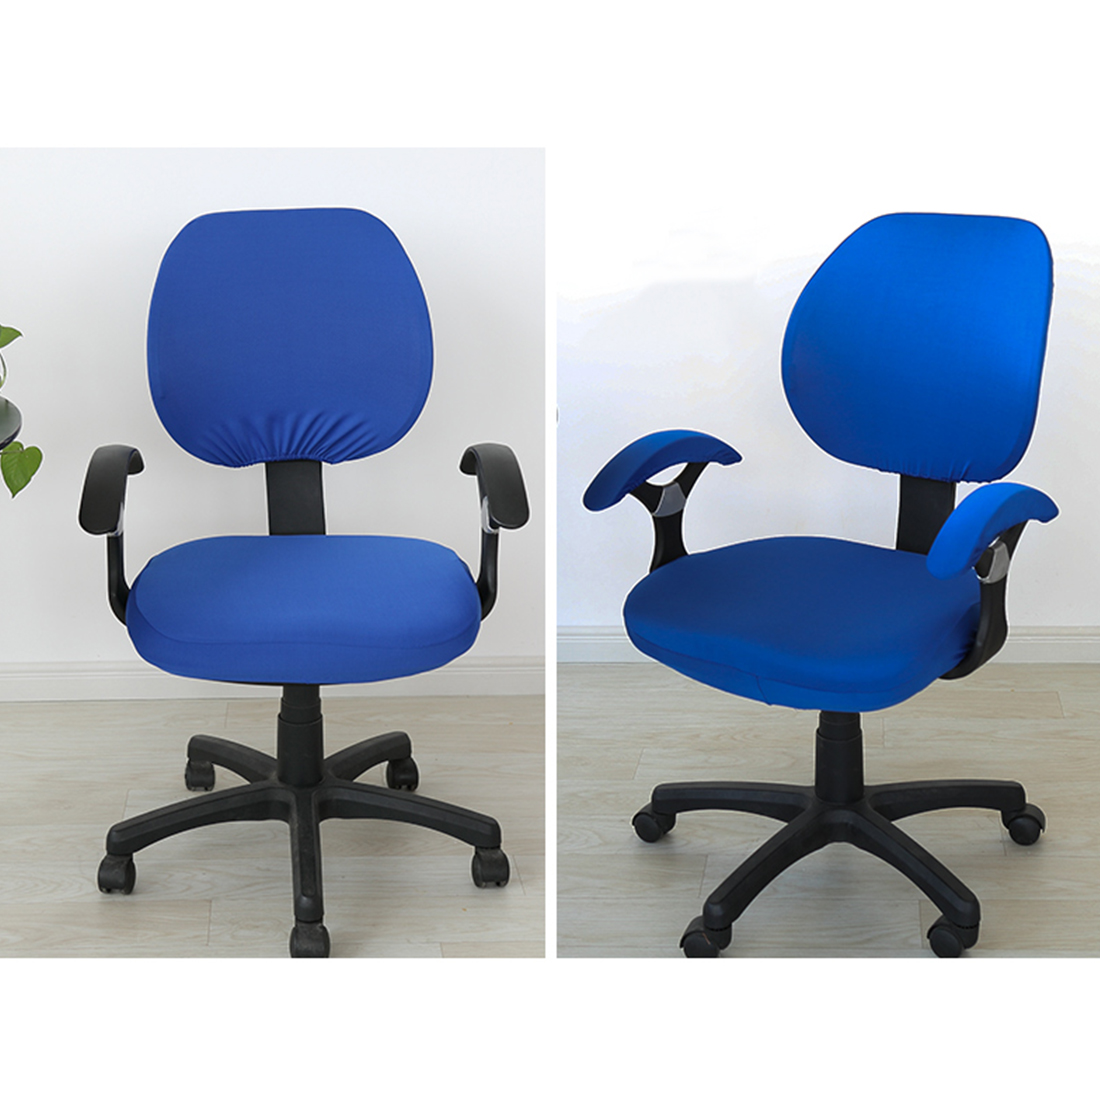 Top Sale Elastic Fabric Spandex Seat Covers For Computer Chairs Office Chair Gaming Chair Easy Washable Removeable Chair Cover Aliexpress